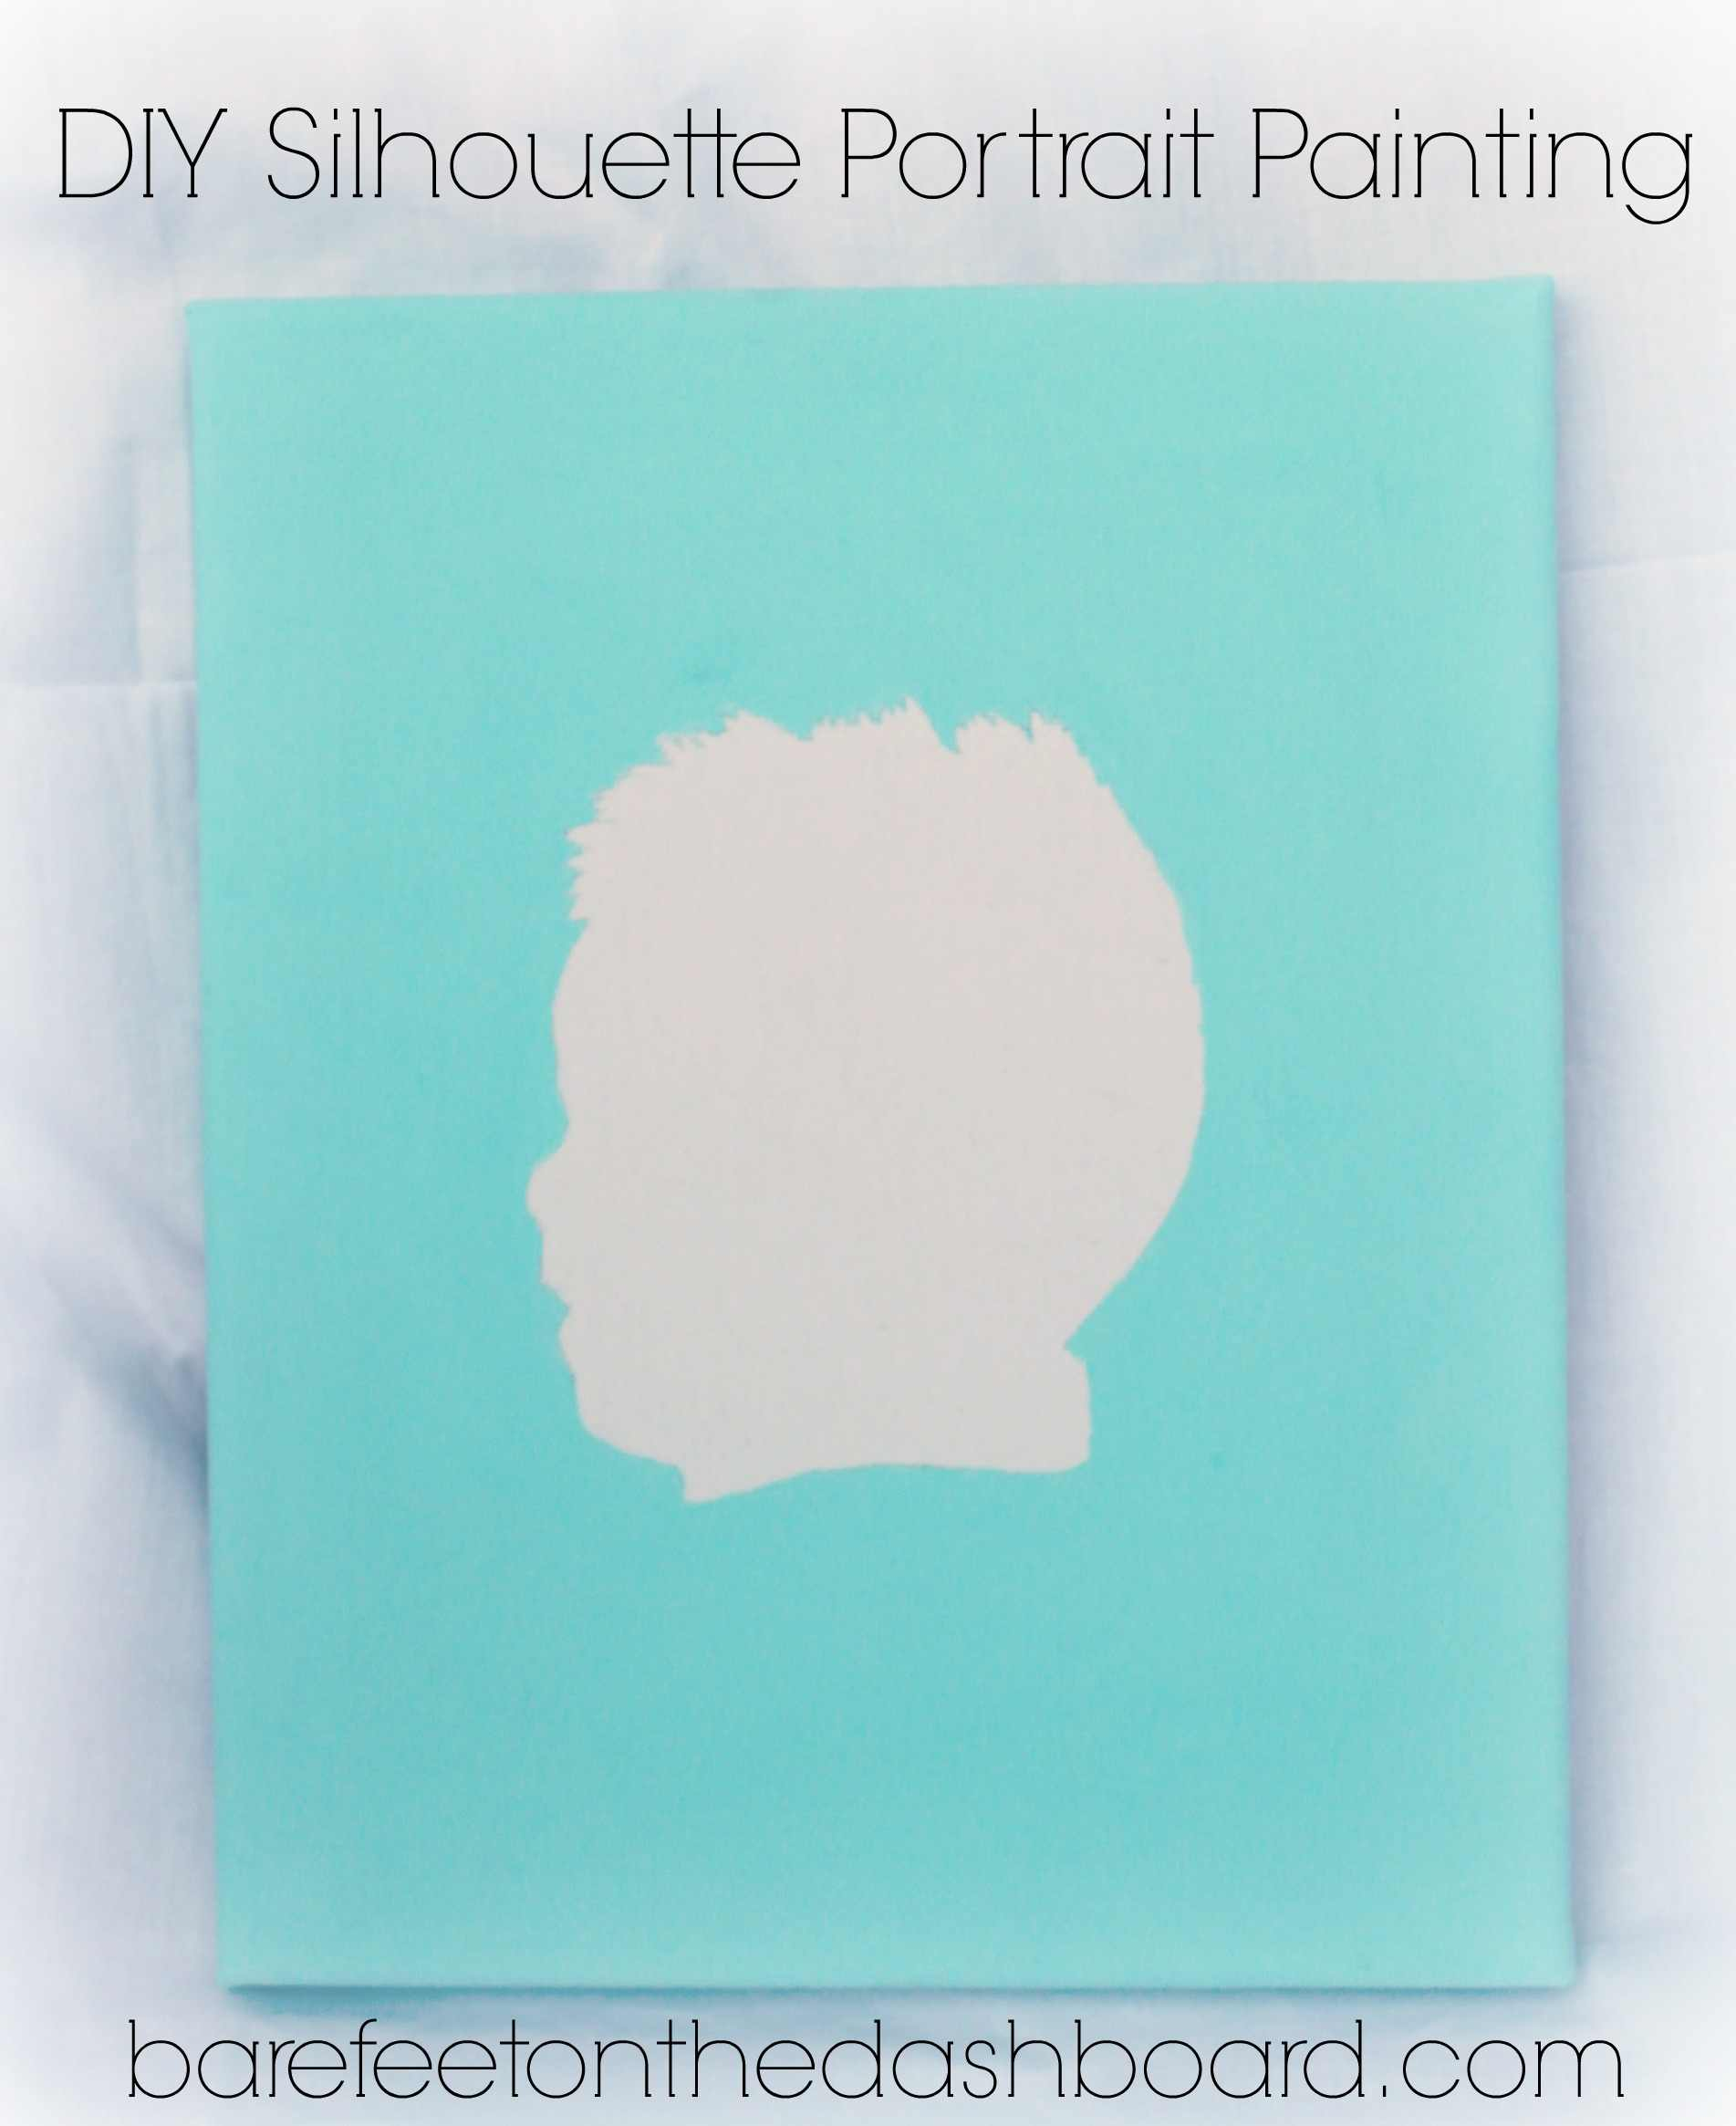 Create a DIY Silhouette Portrait Painting with Tutorial